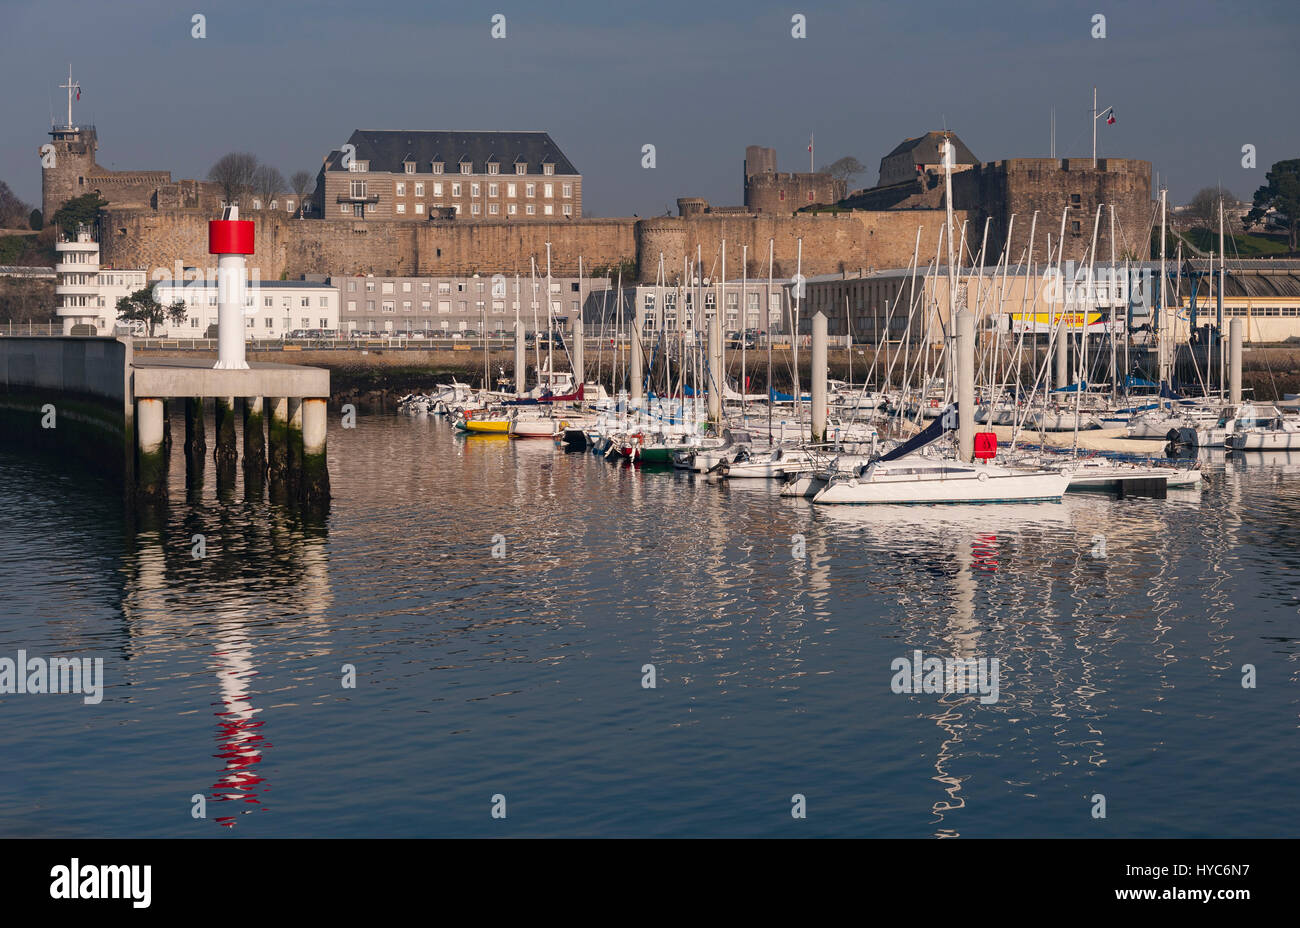 Brest (France), overlooking the port of Plaisance and the castle. - Stock Image